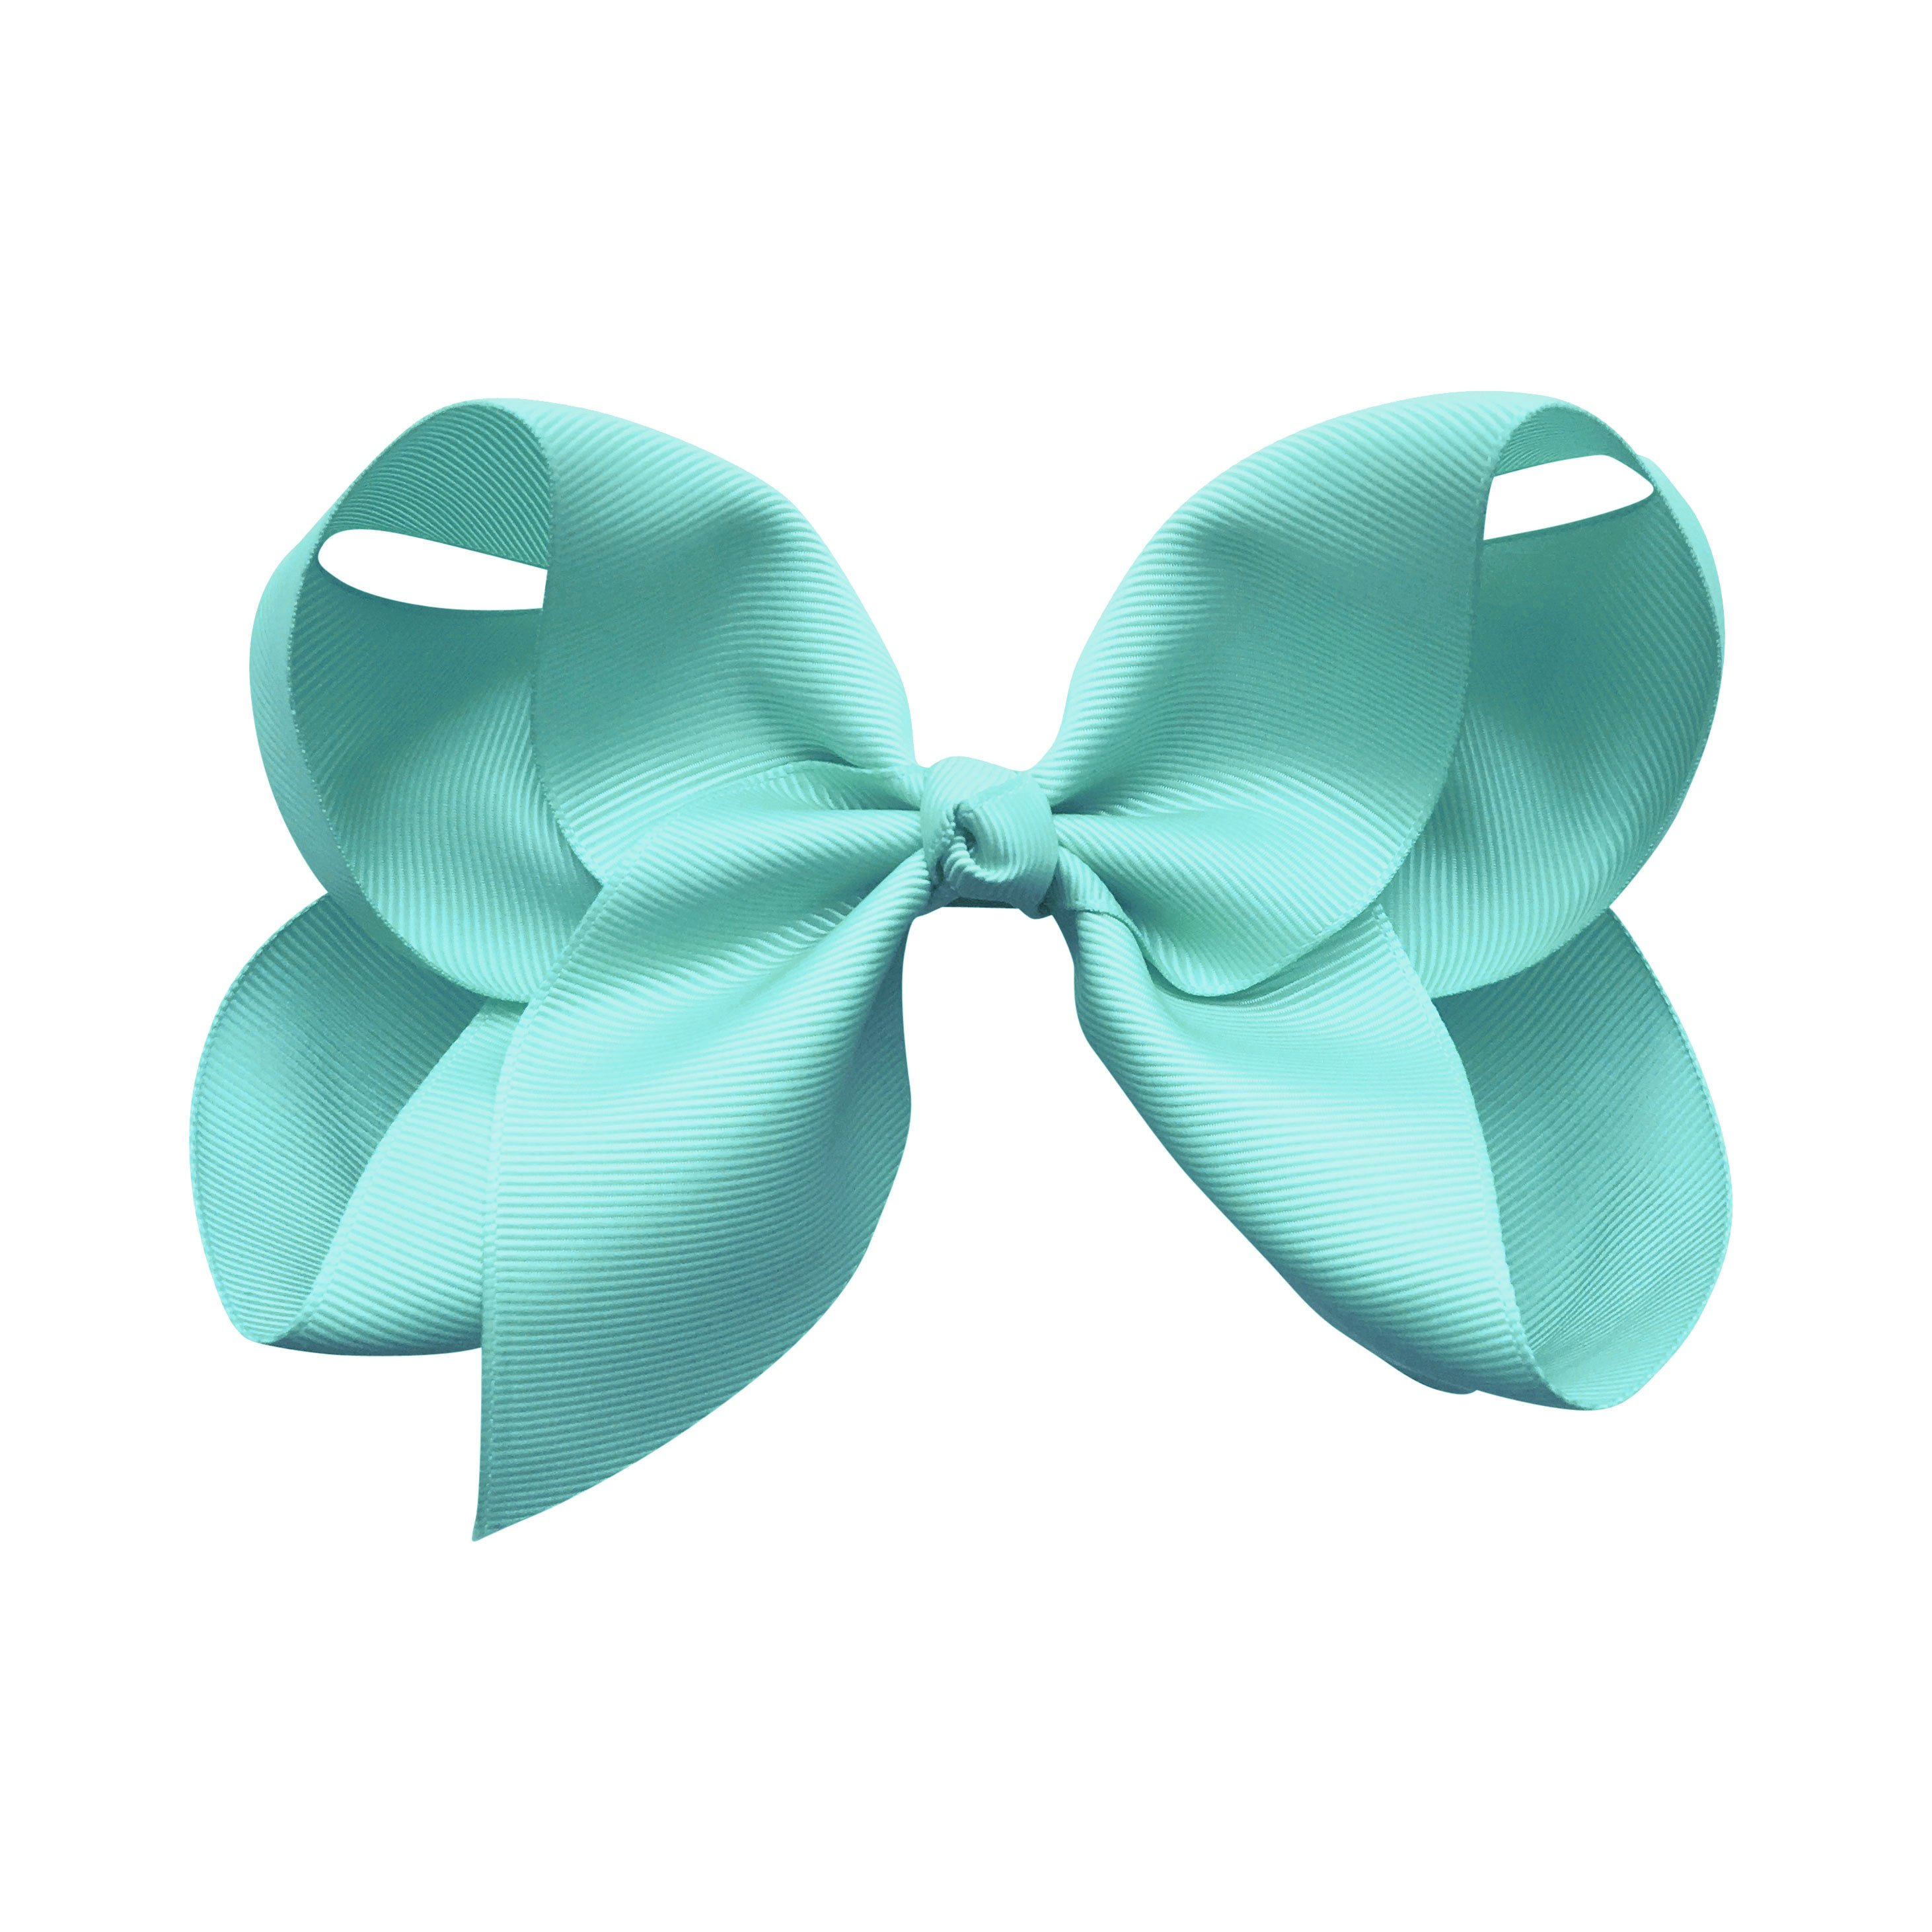 Image of Jumbo Boutique Bow - alligator clip - aqua